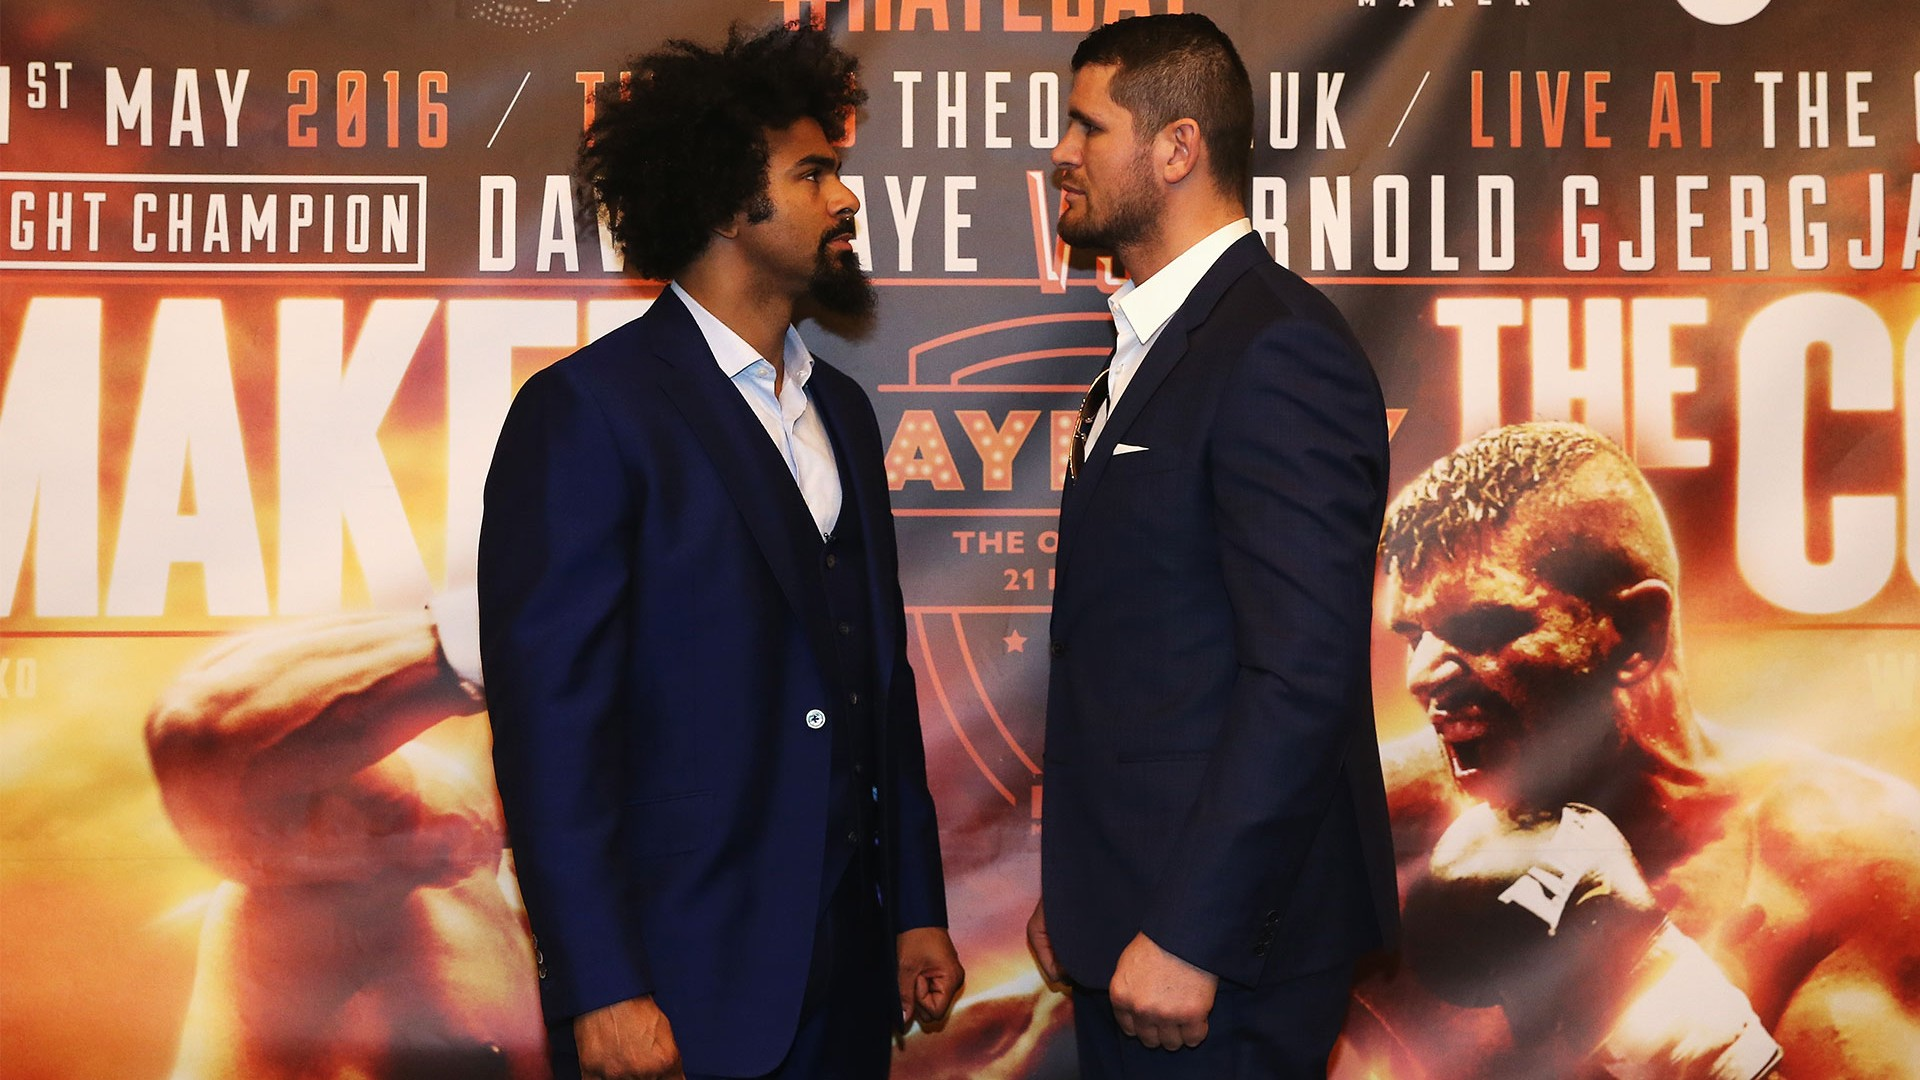 David Haye and Arnold Gjergjaj at pre-fight press conference